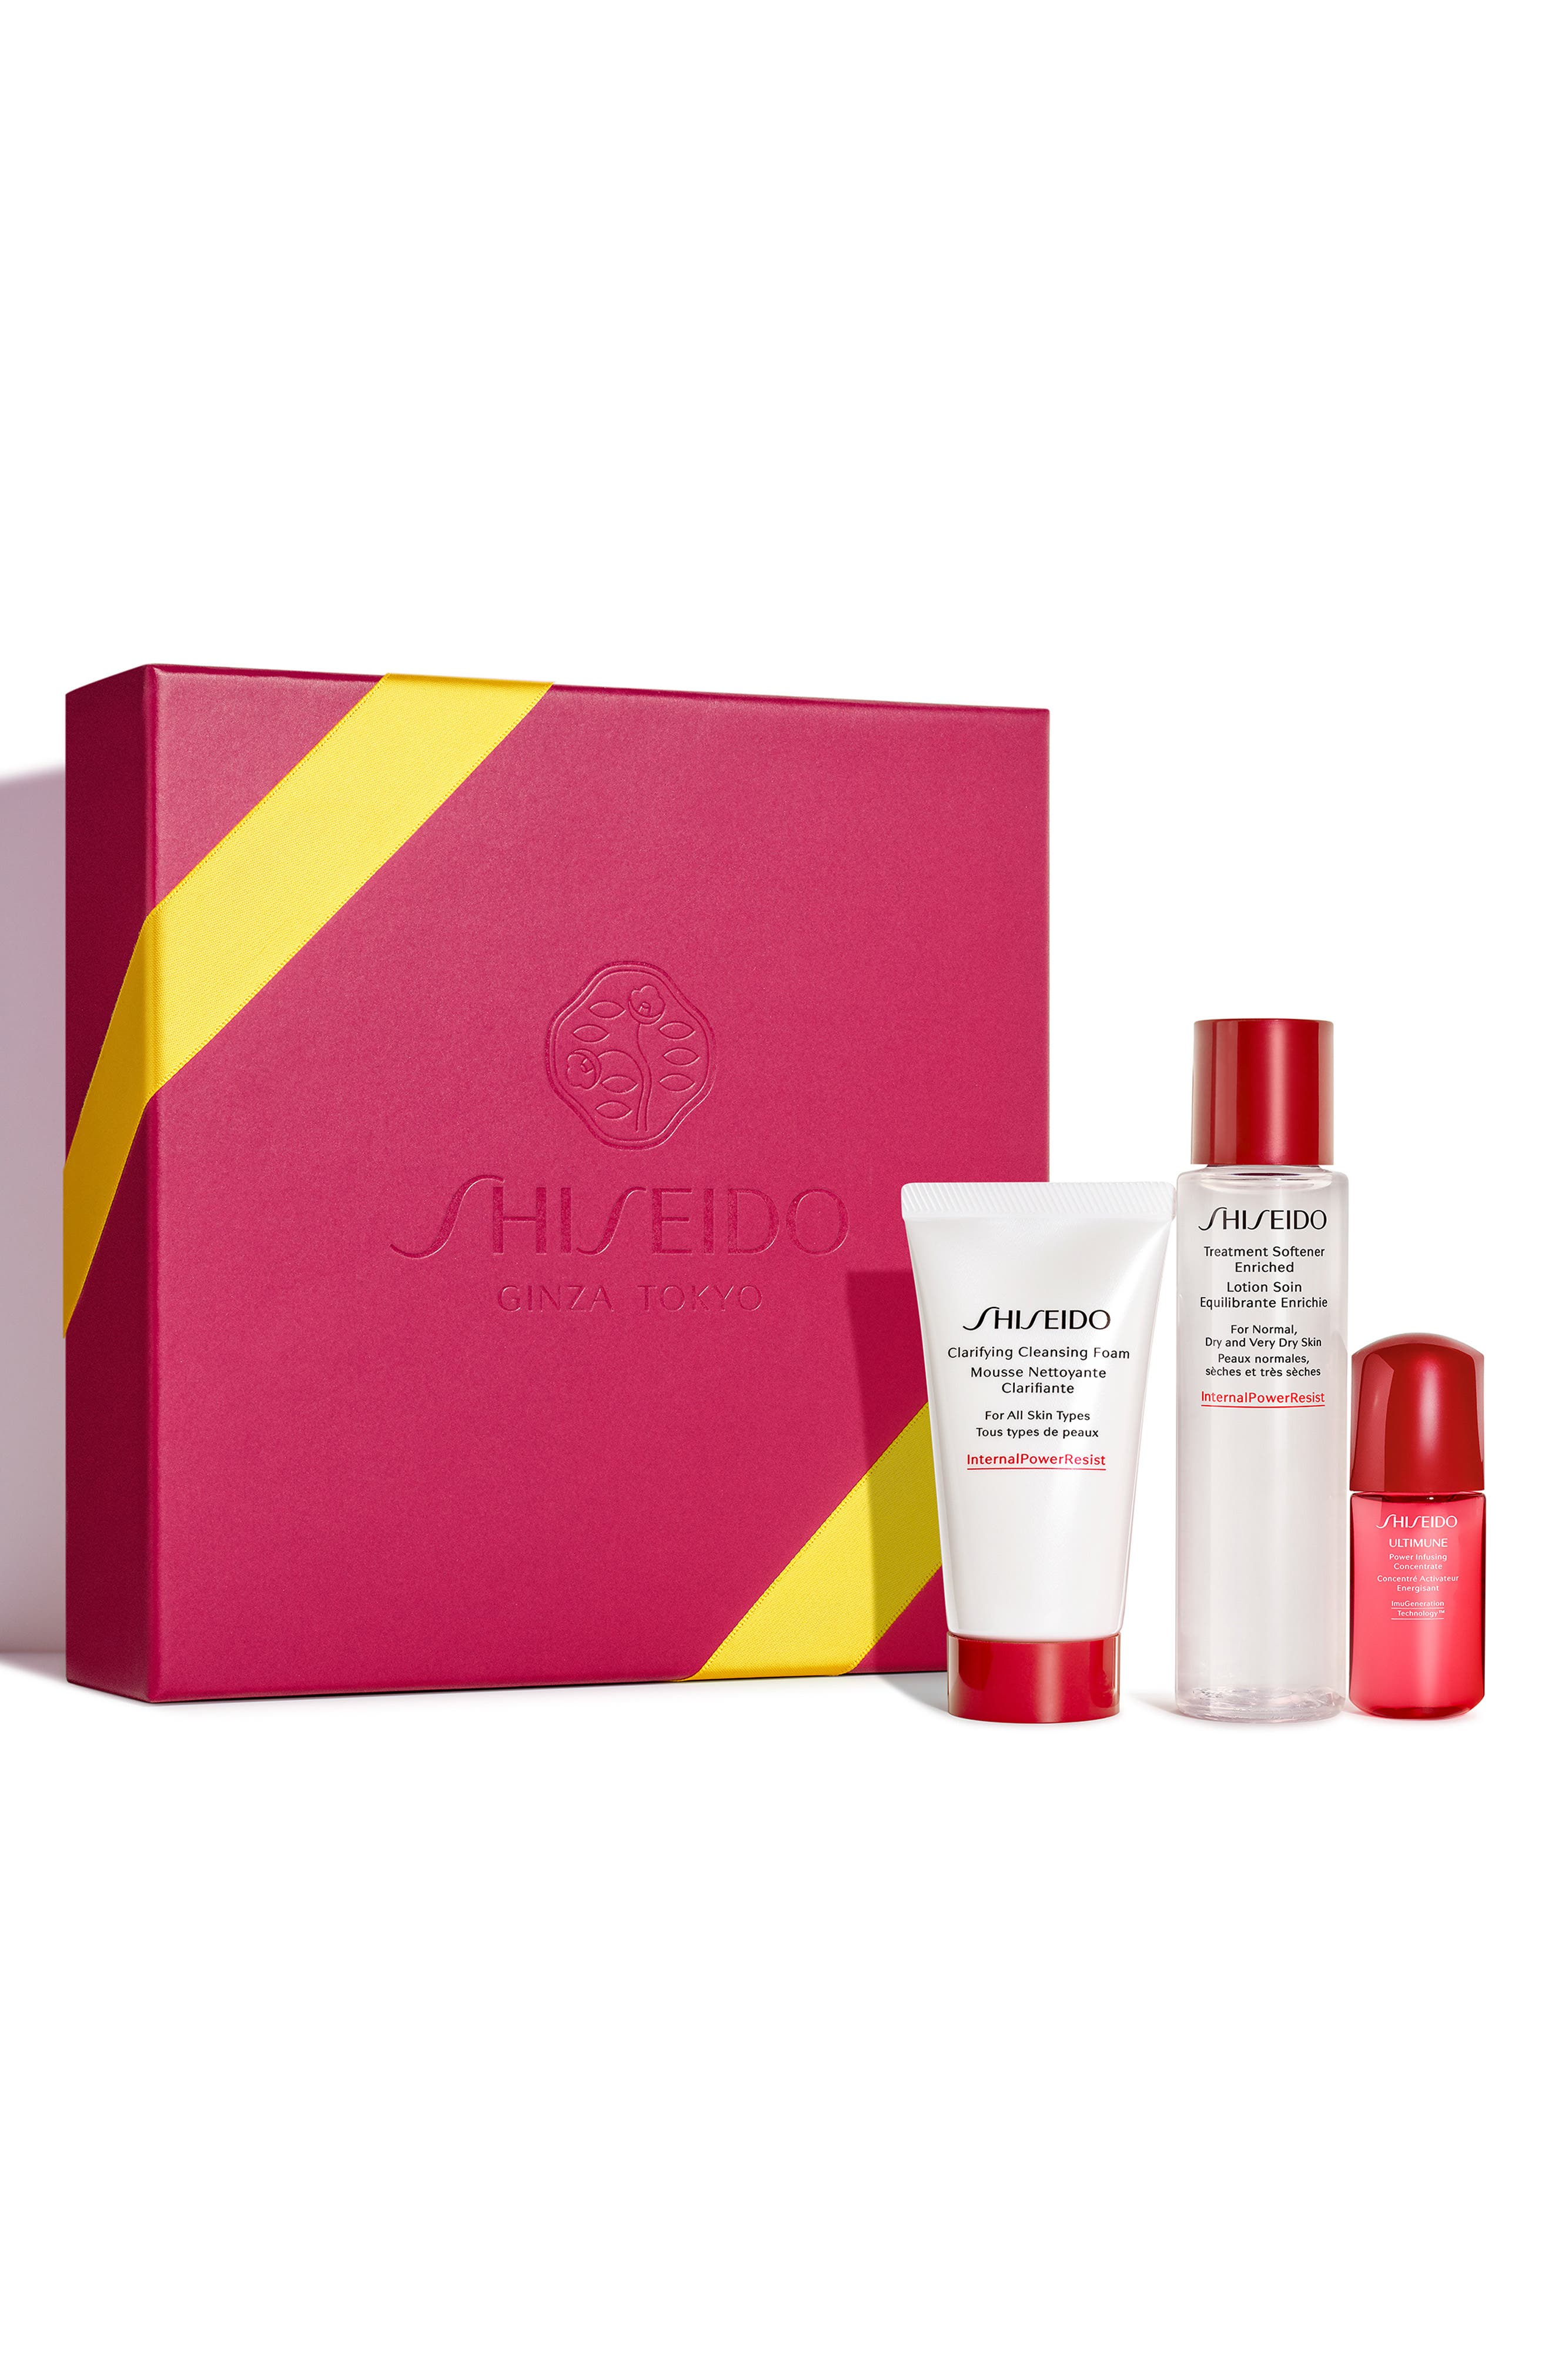 Shisiedo The Gift of Cleansing Essentials Set,                             Alternate thumbnail 2, color,                             000